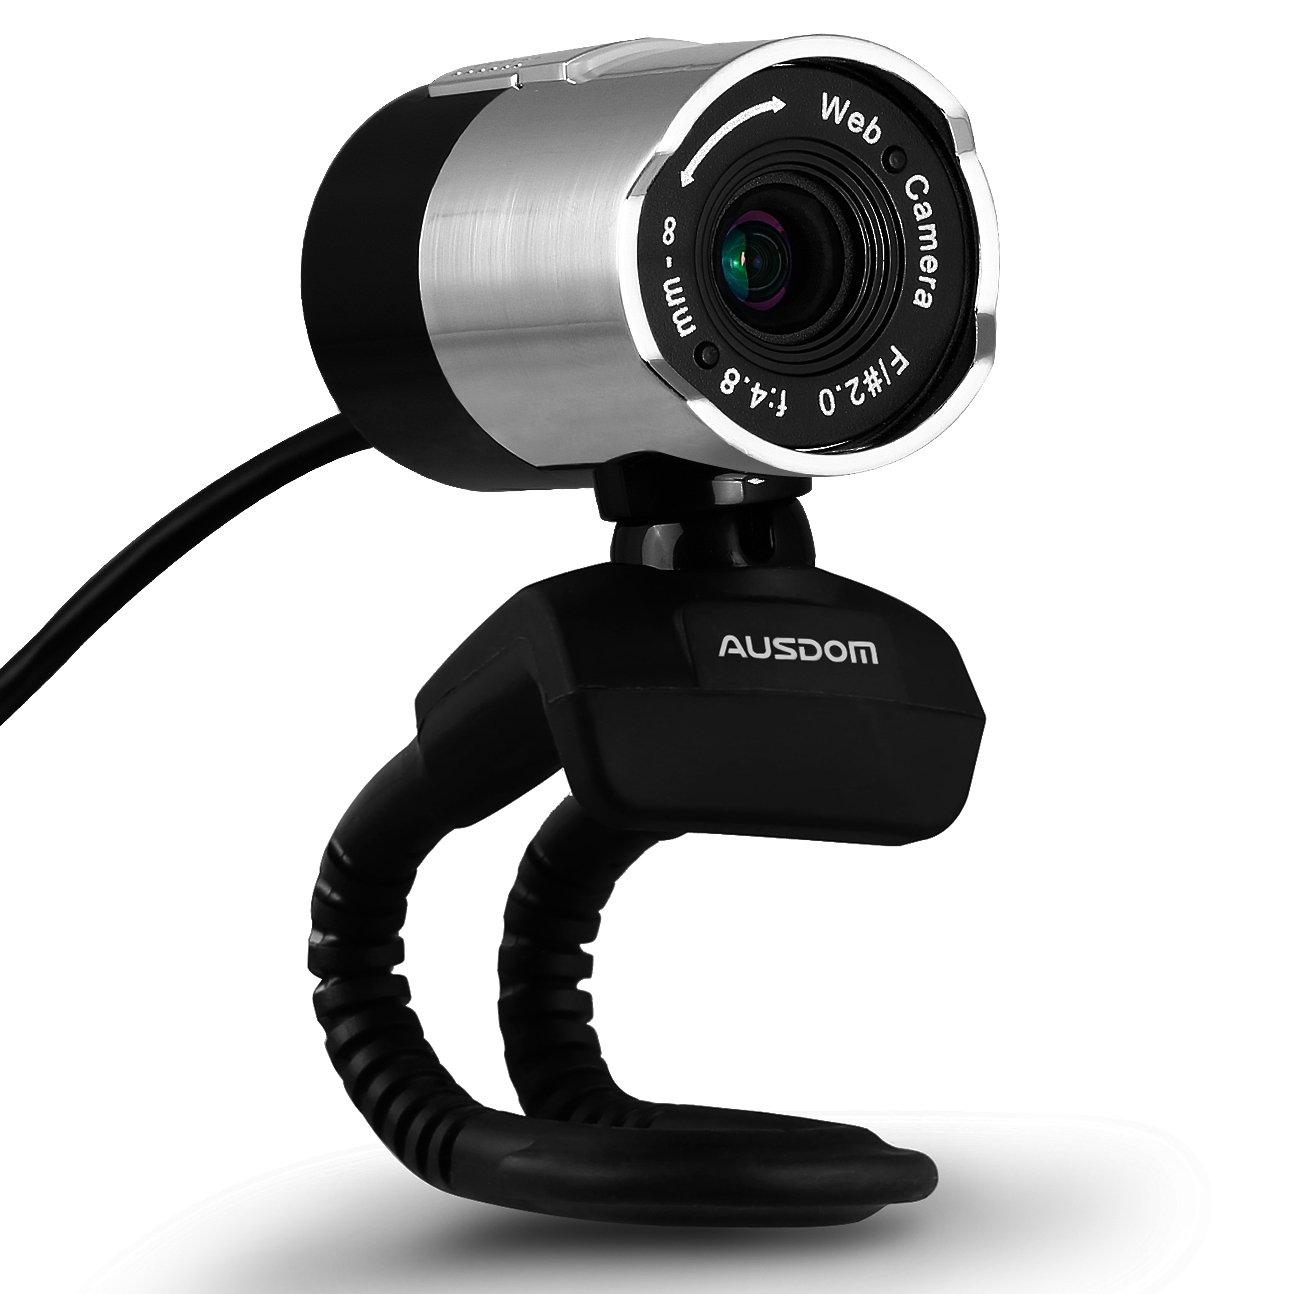 Ausdom Web Camera Full HD Web cam with Microphone Video Calling and Recording for Computer, Laptop and Desktop Plug and Play 360 Degree rotatable Computer Camera for Skype, YouTube AW335